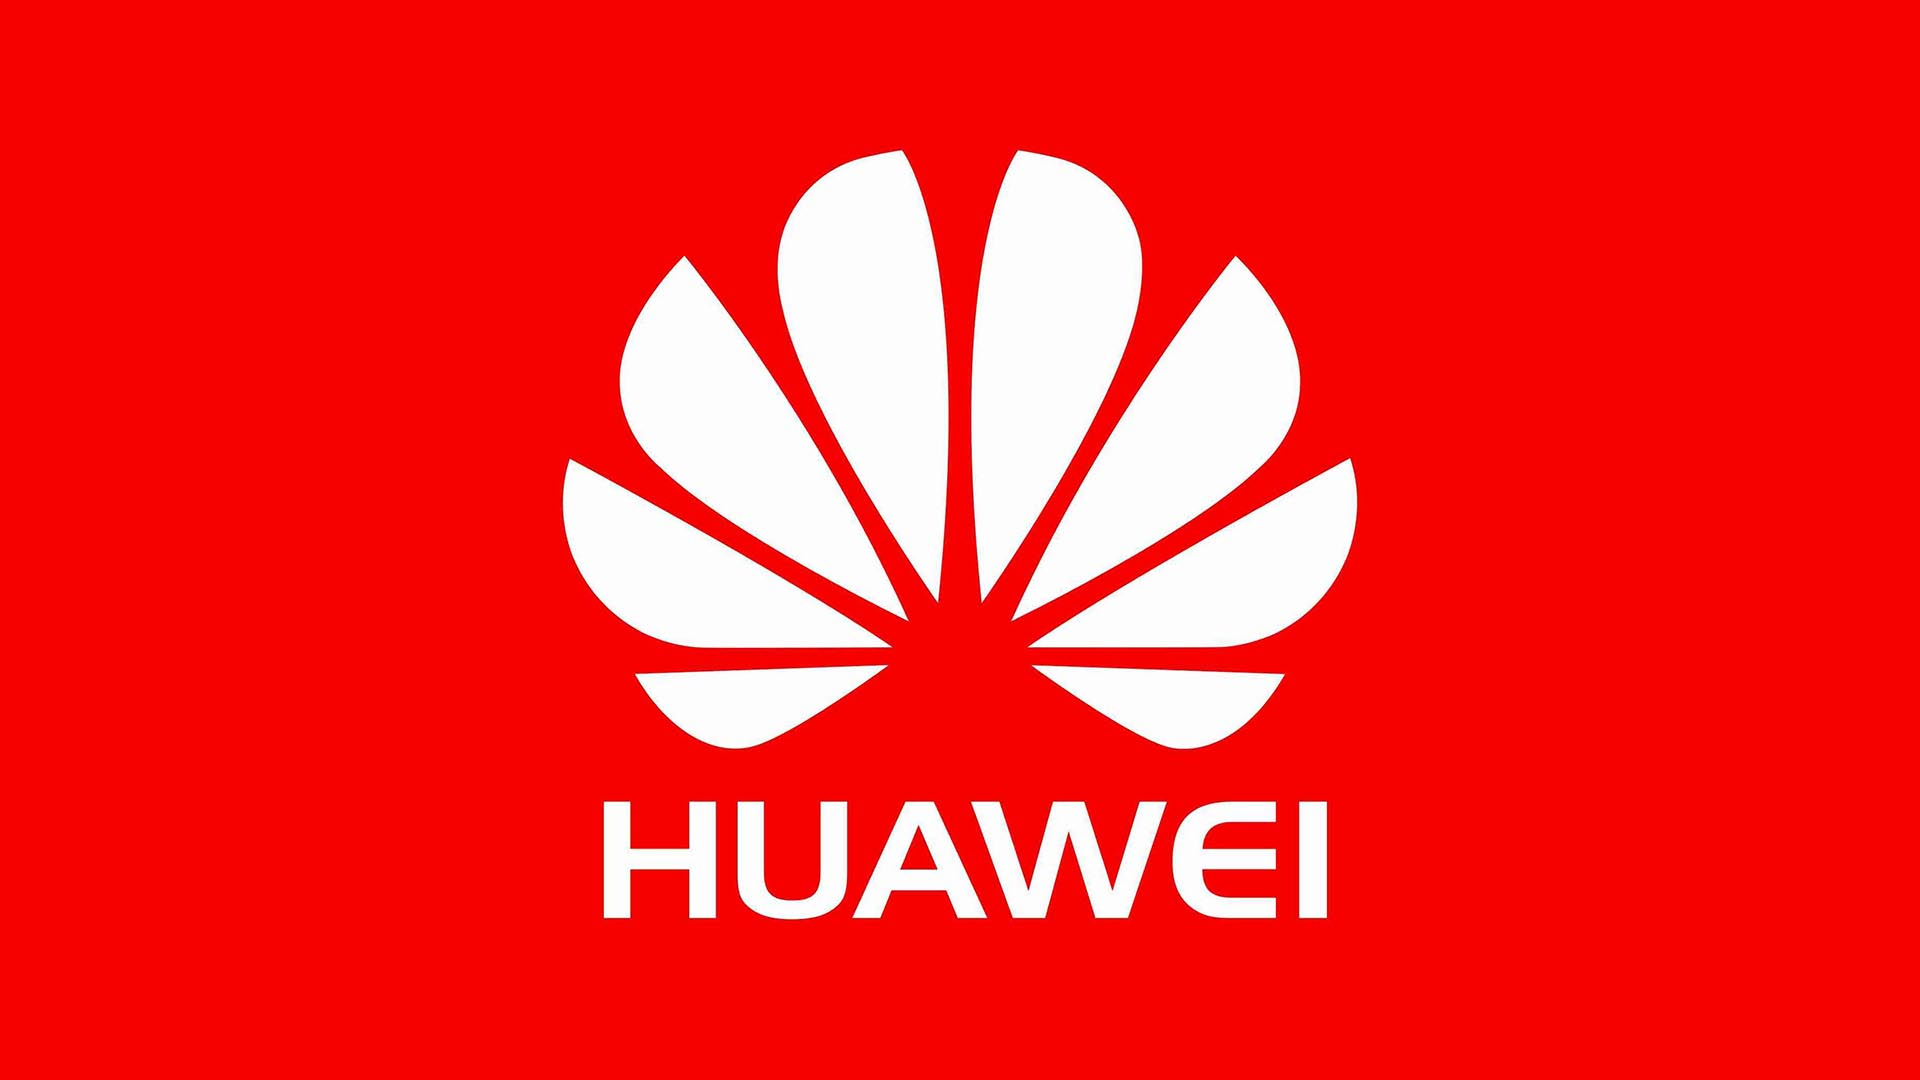 - Huawei Helping China with Hacks - 83% of Personal Computers Purchased in Asian Came with Pirated Software